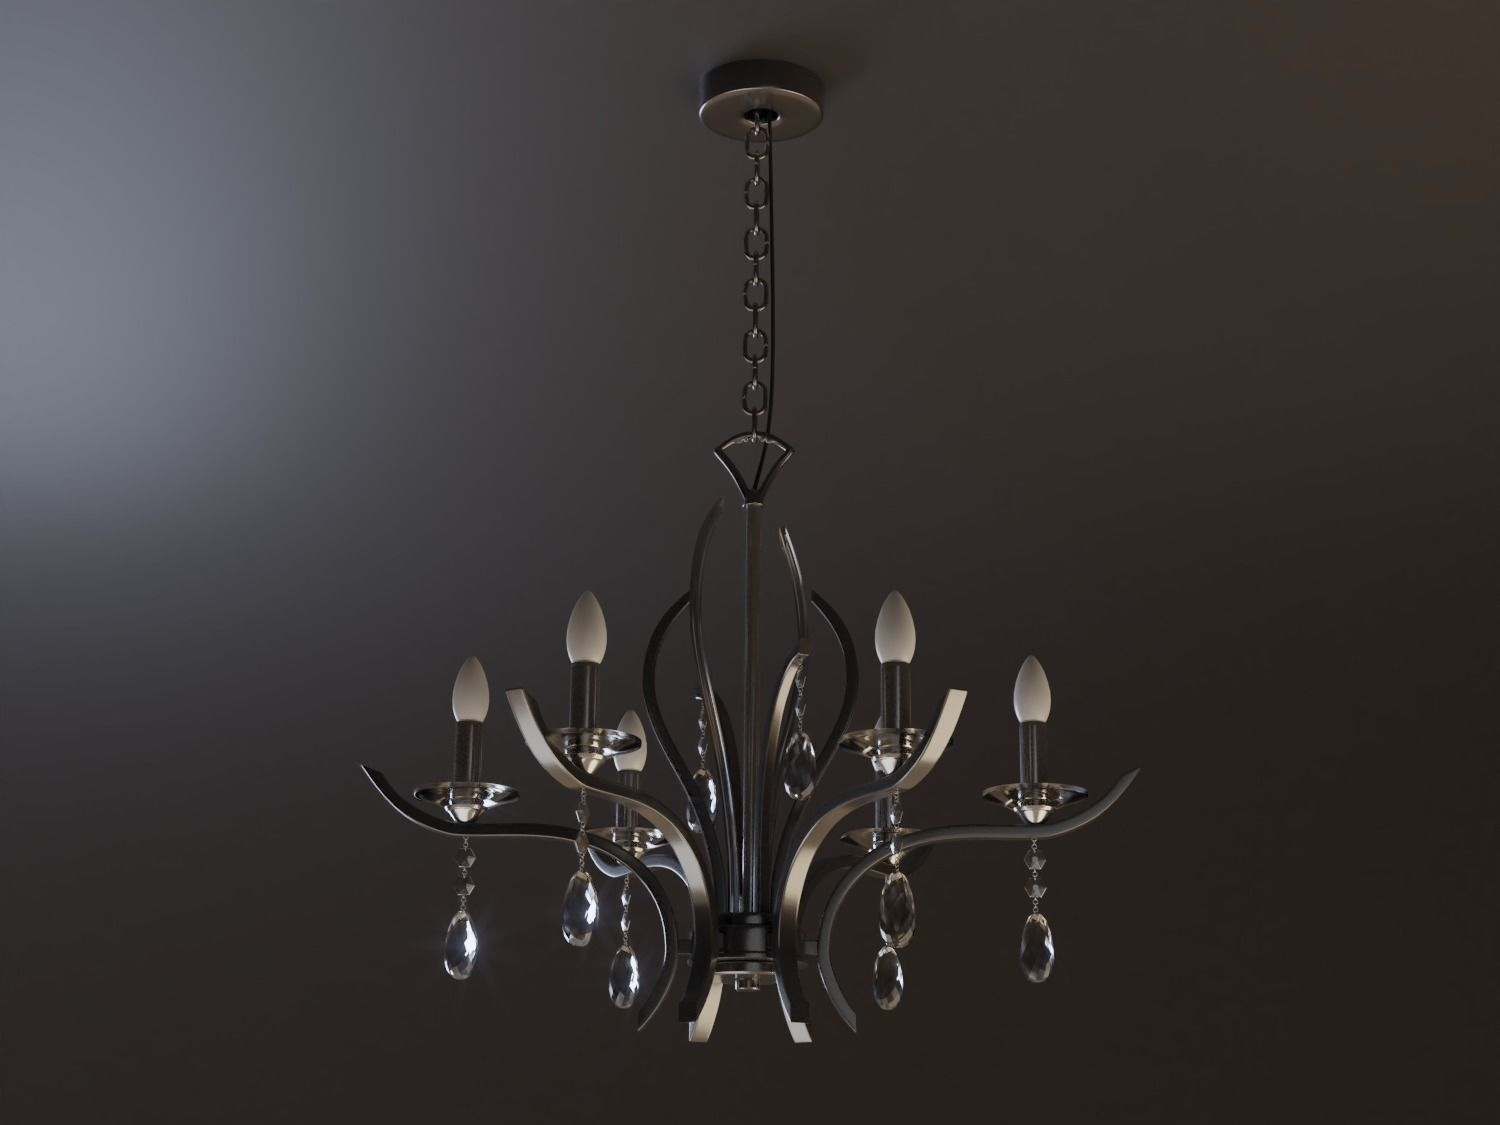 3D model interior Modern Chandelier | CGTrader